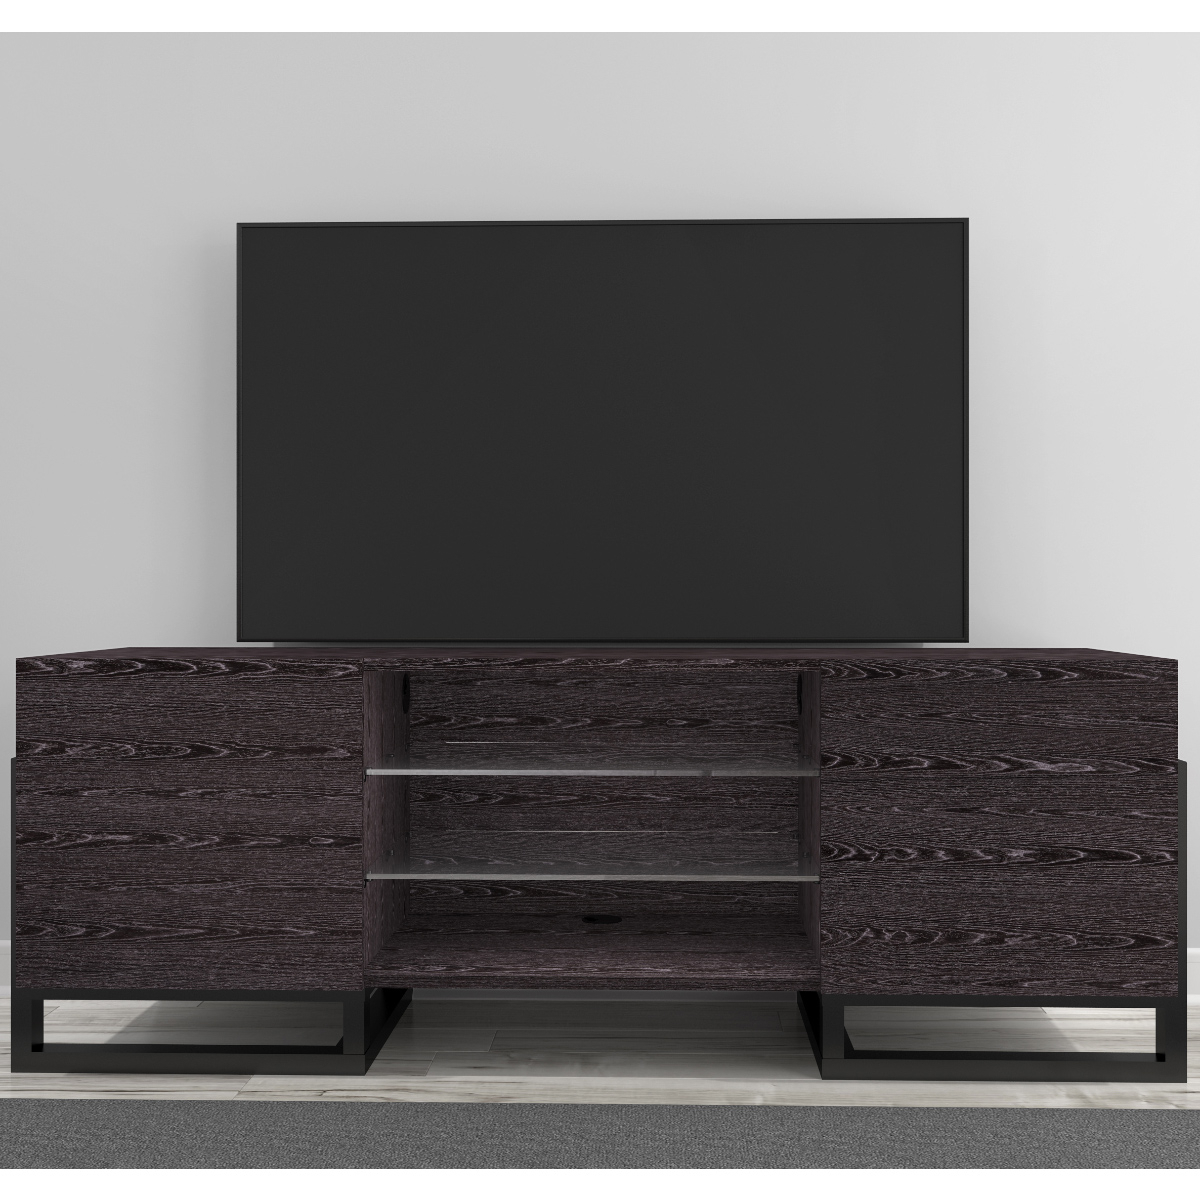 Awesome Selection Of Tv Stands (View 17 of 20)